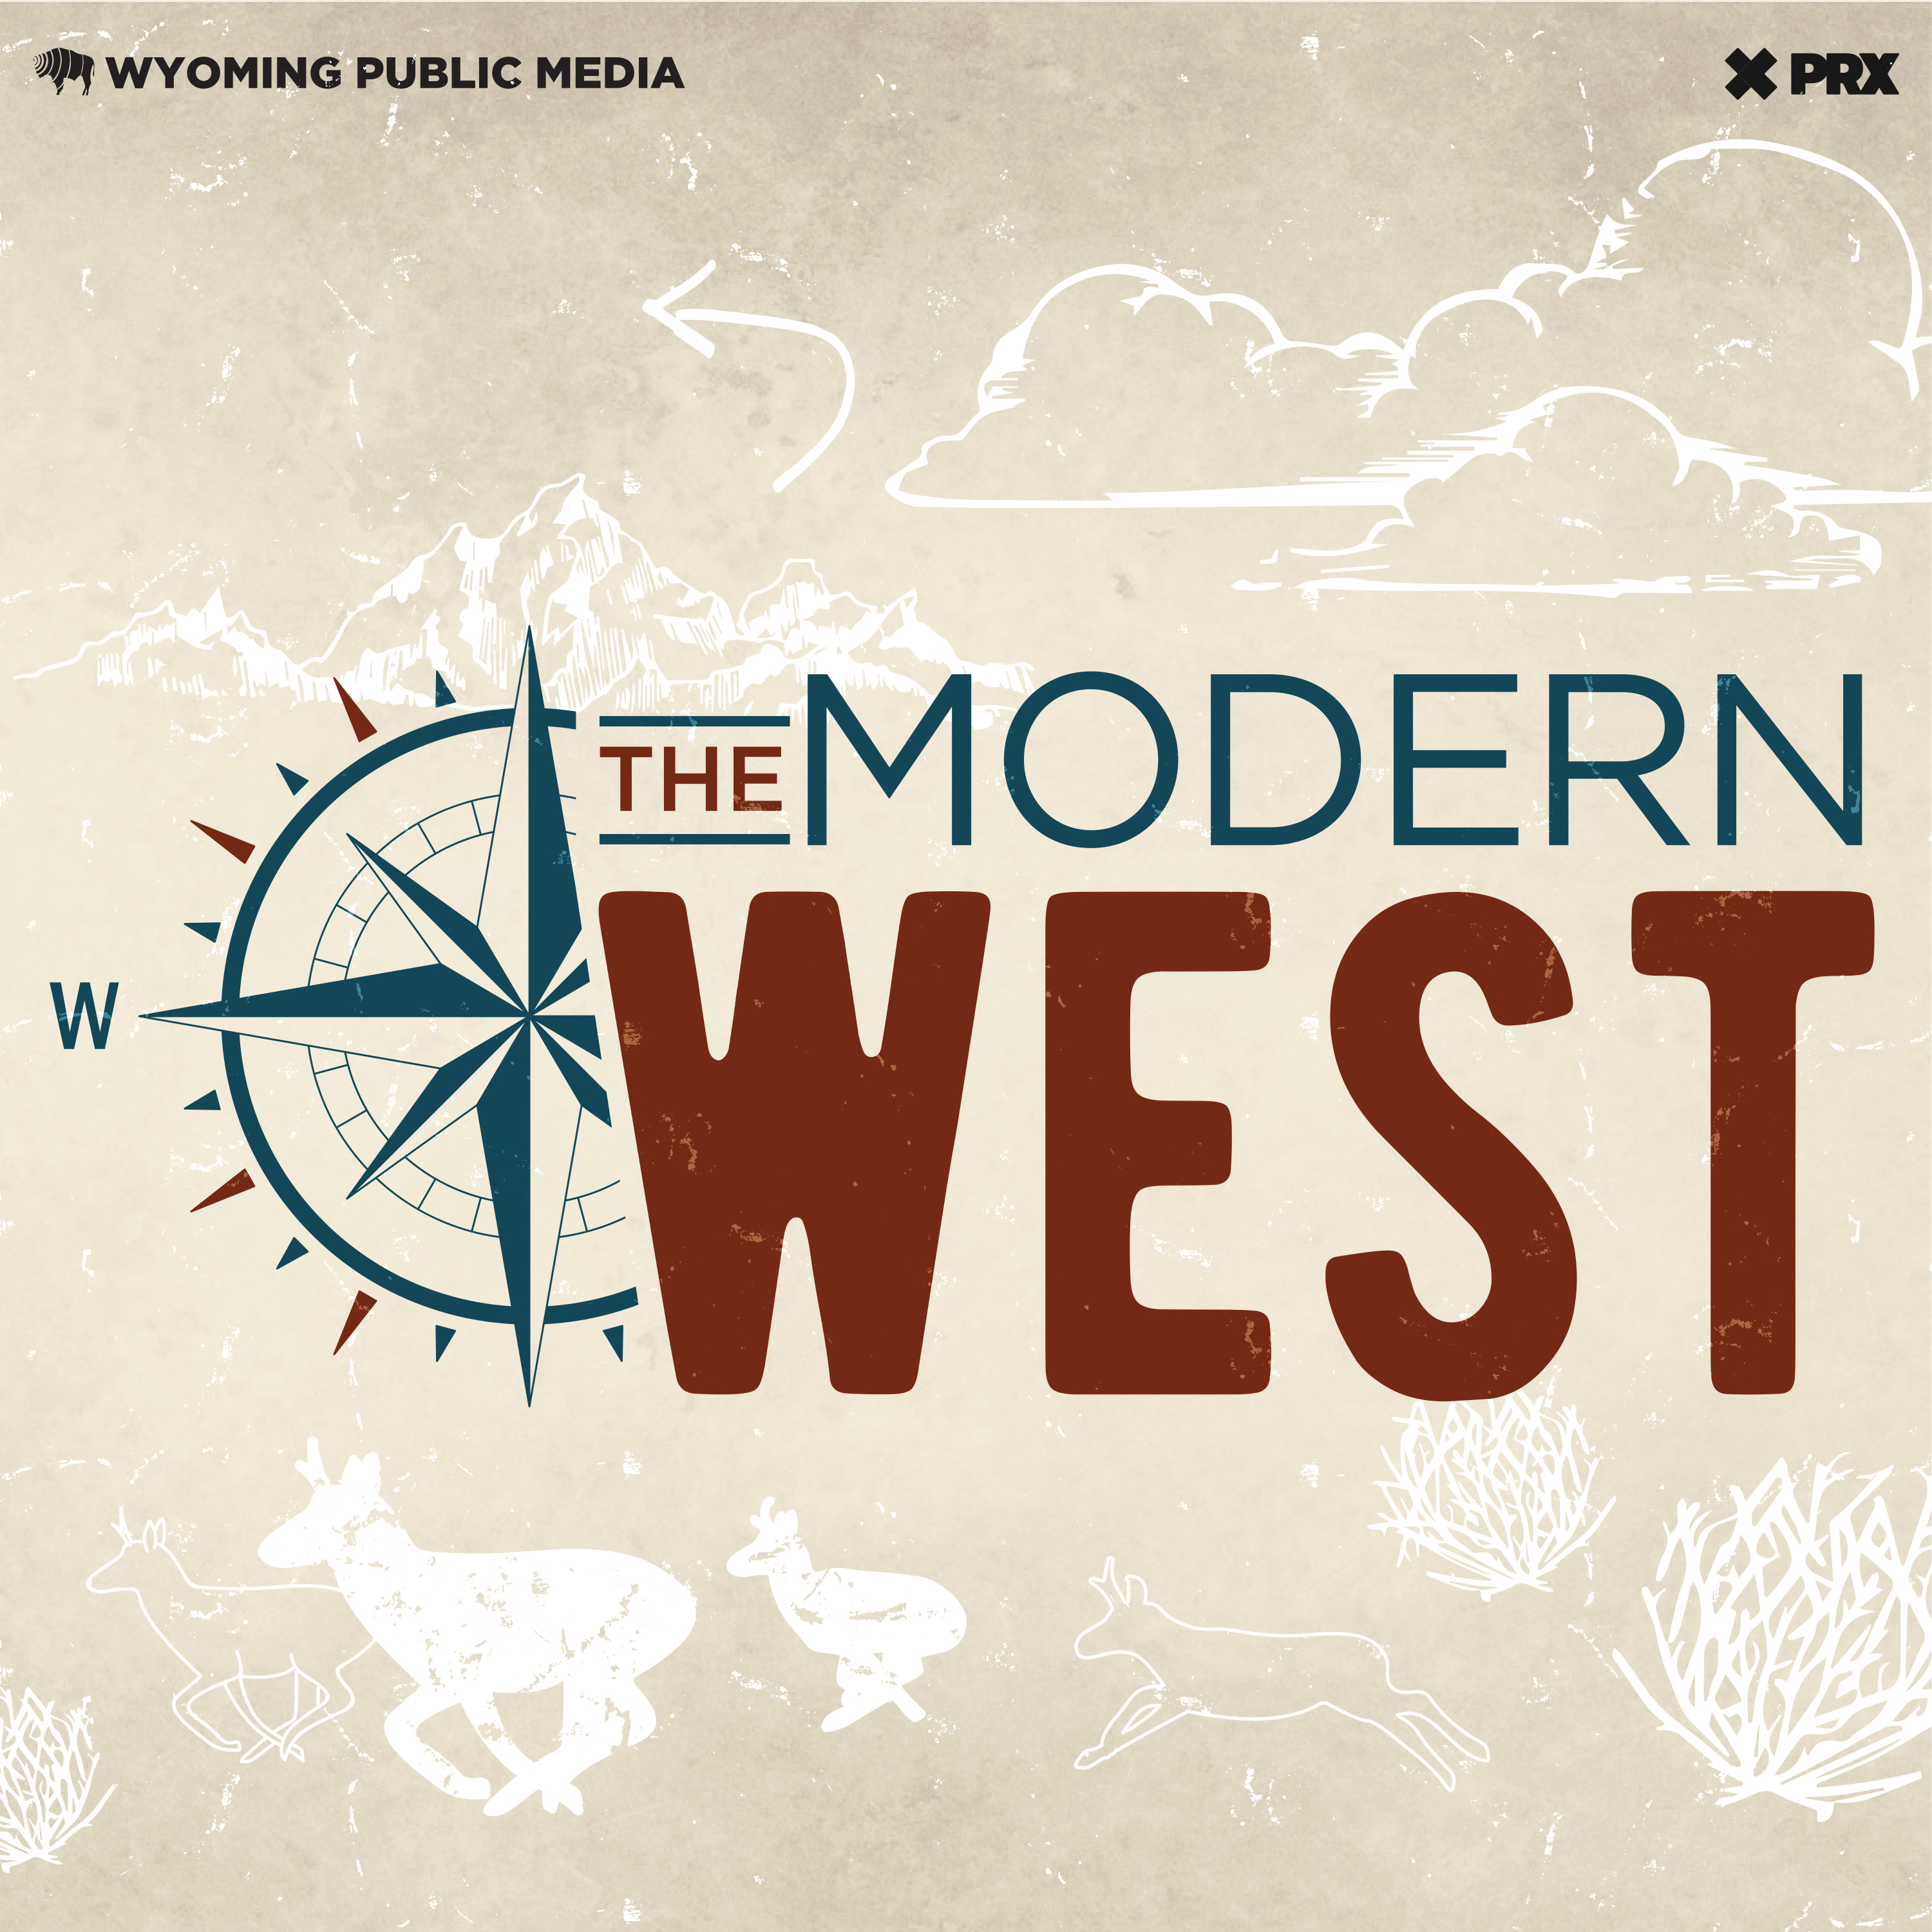 The_modern_west_-_podcast_square-wpm_prx_small